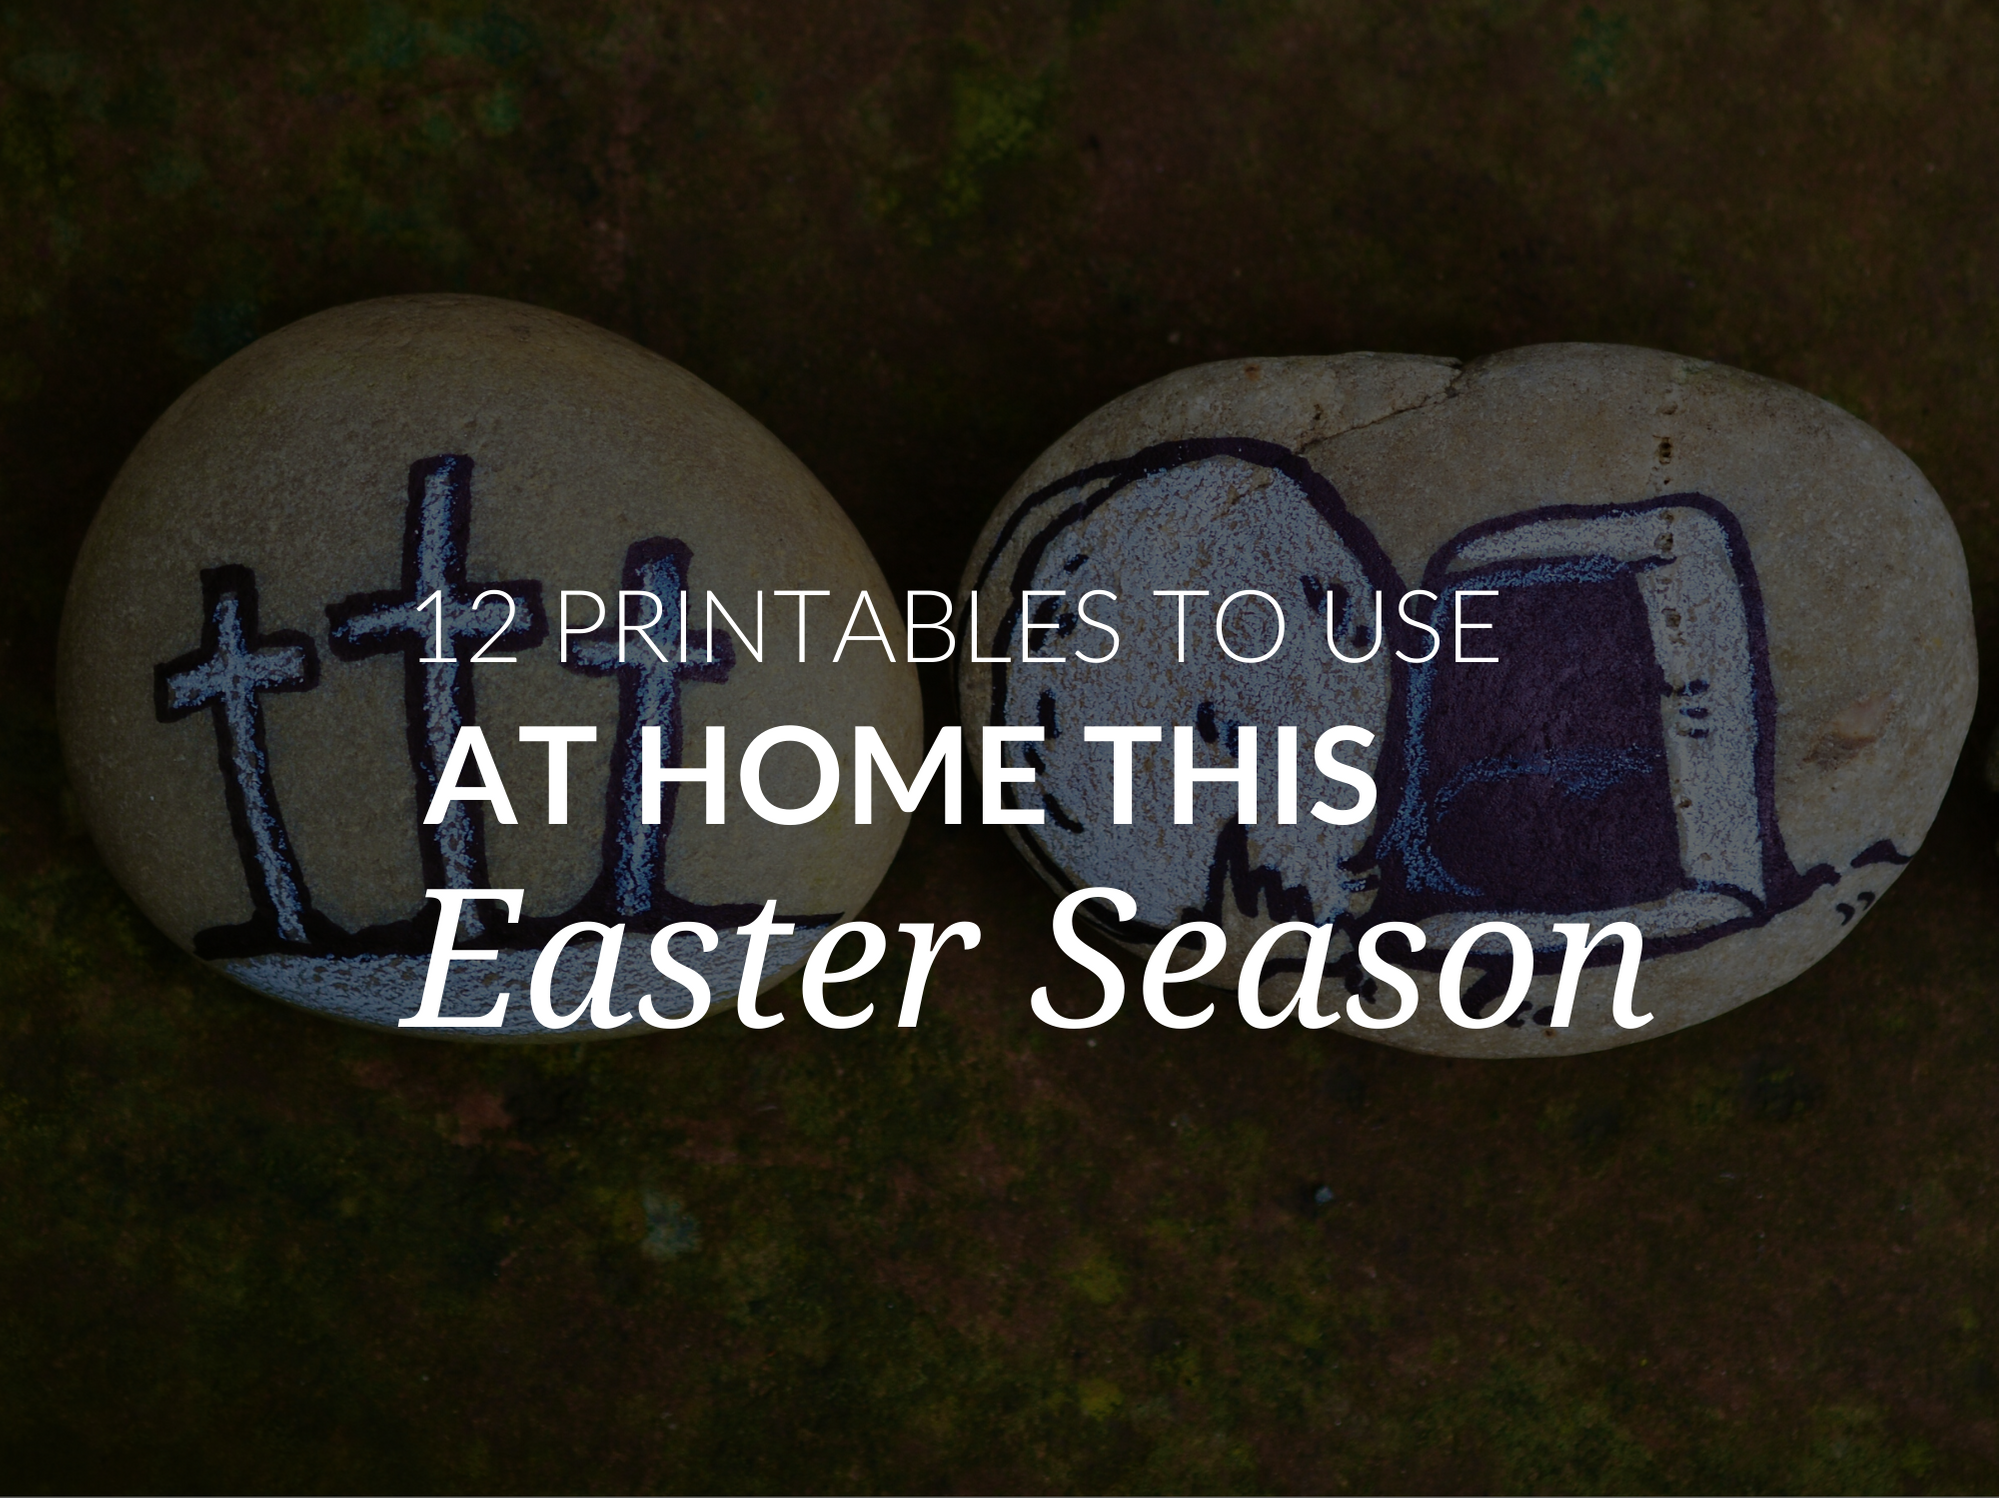 printables-catholic-families-can-use-at-home-during-easter-season